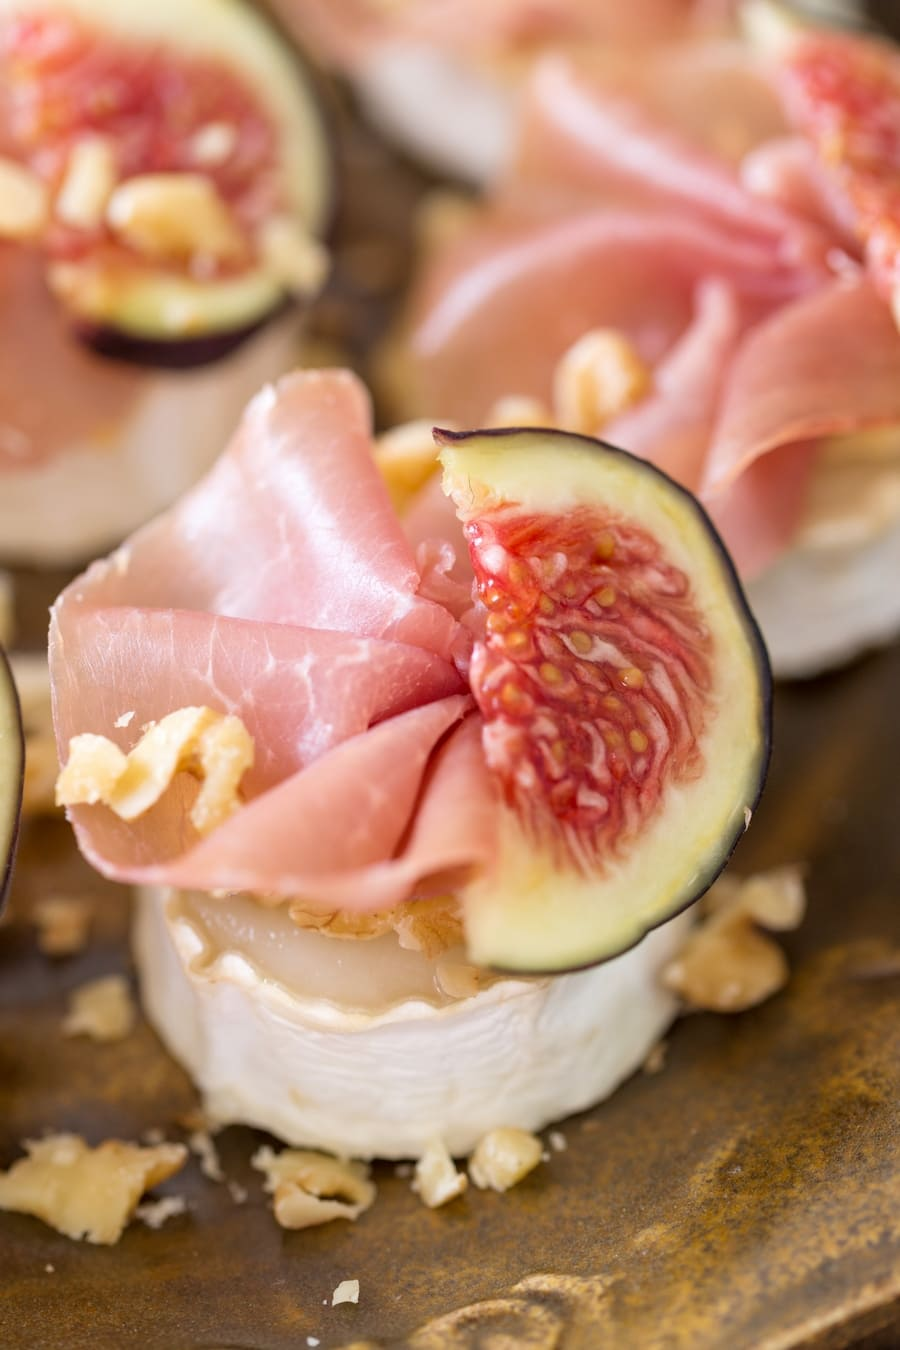 Baked chevre bits with figs and prosciutto.